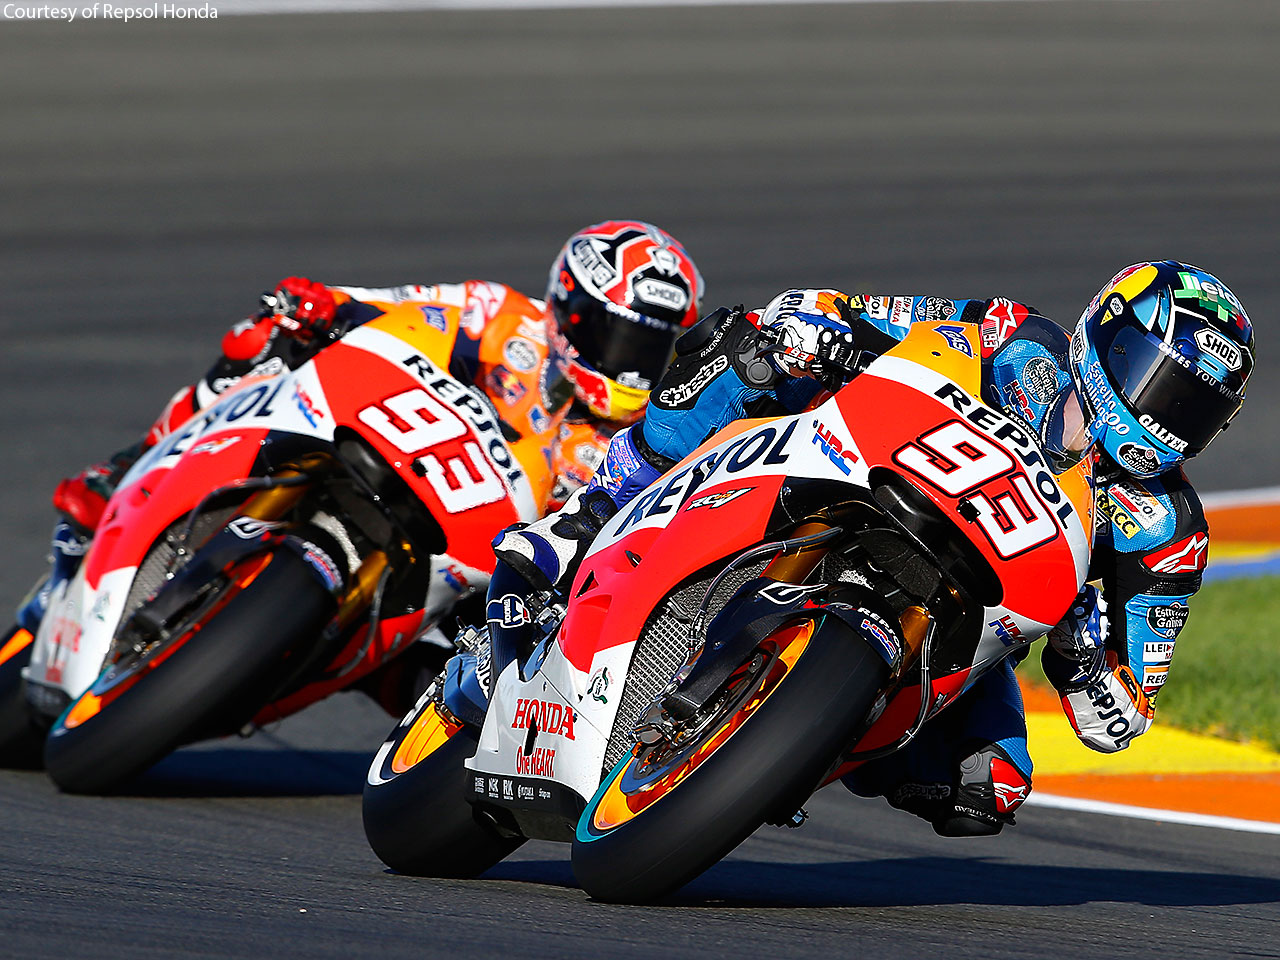 motogp-racing-wallpaper-background-hd-03